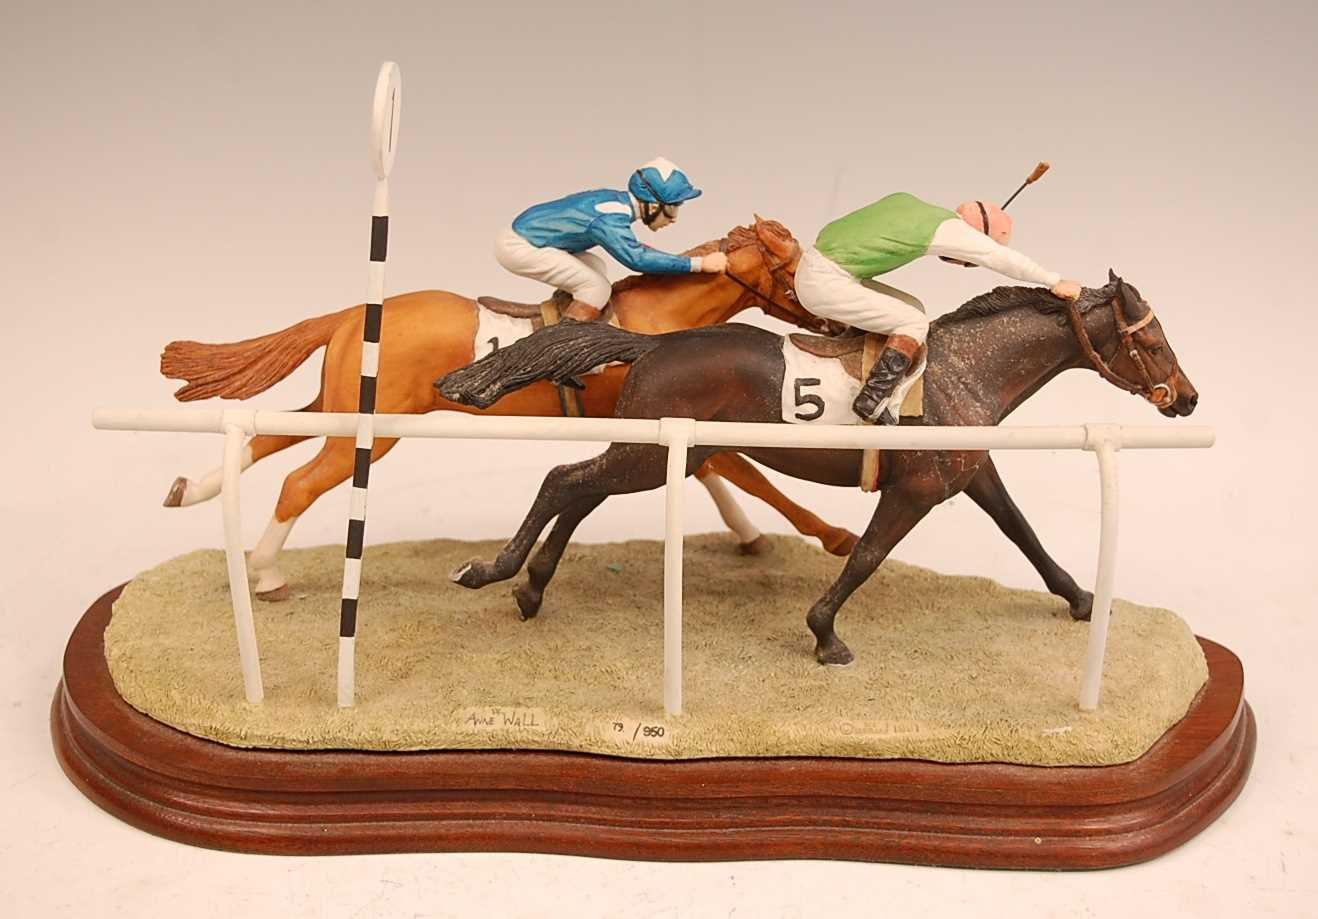 A Border Fine Arts figure group, The Final Furlong, model no. L.109 designed by Anne Wall, limited - Image 2 of 4